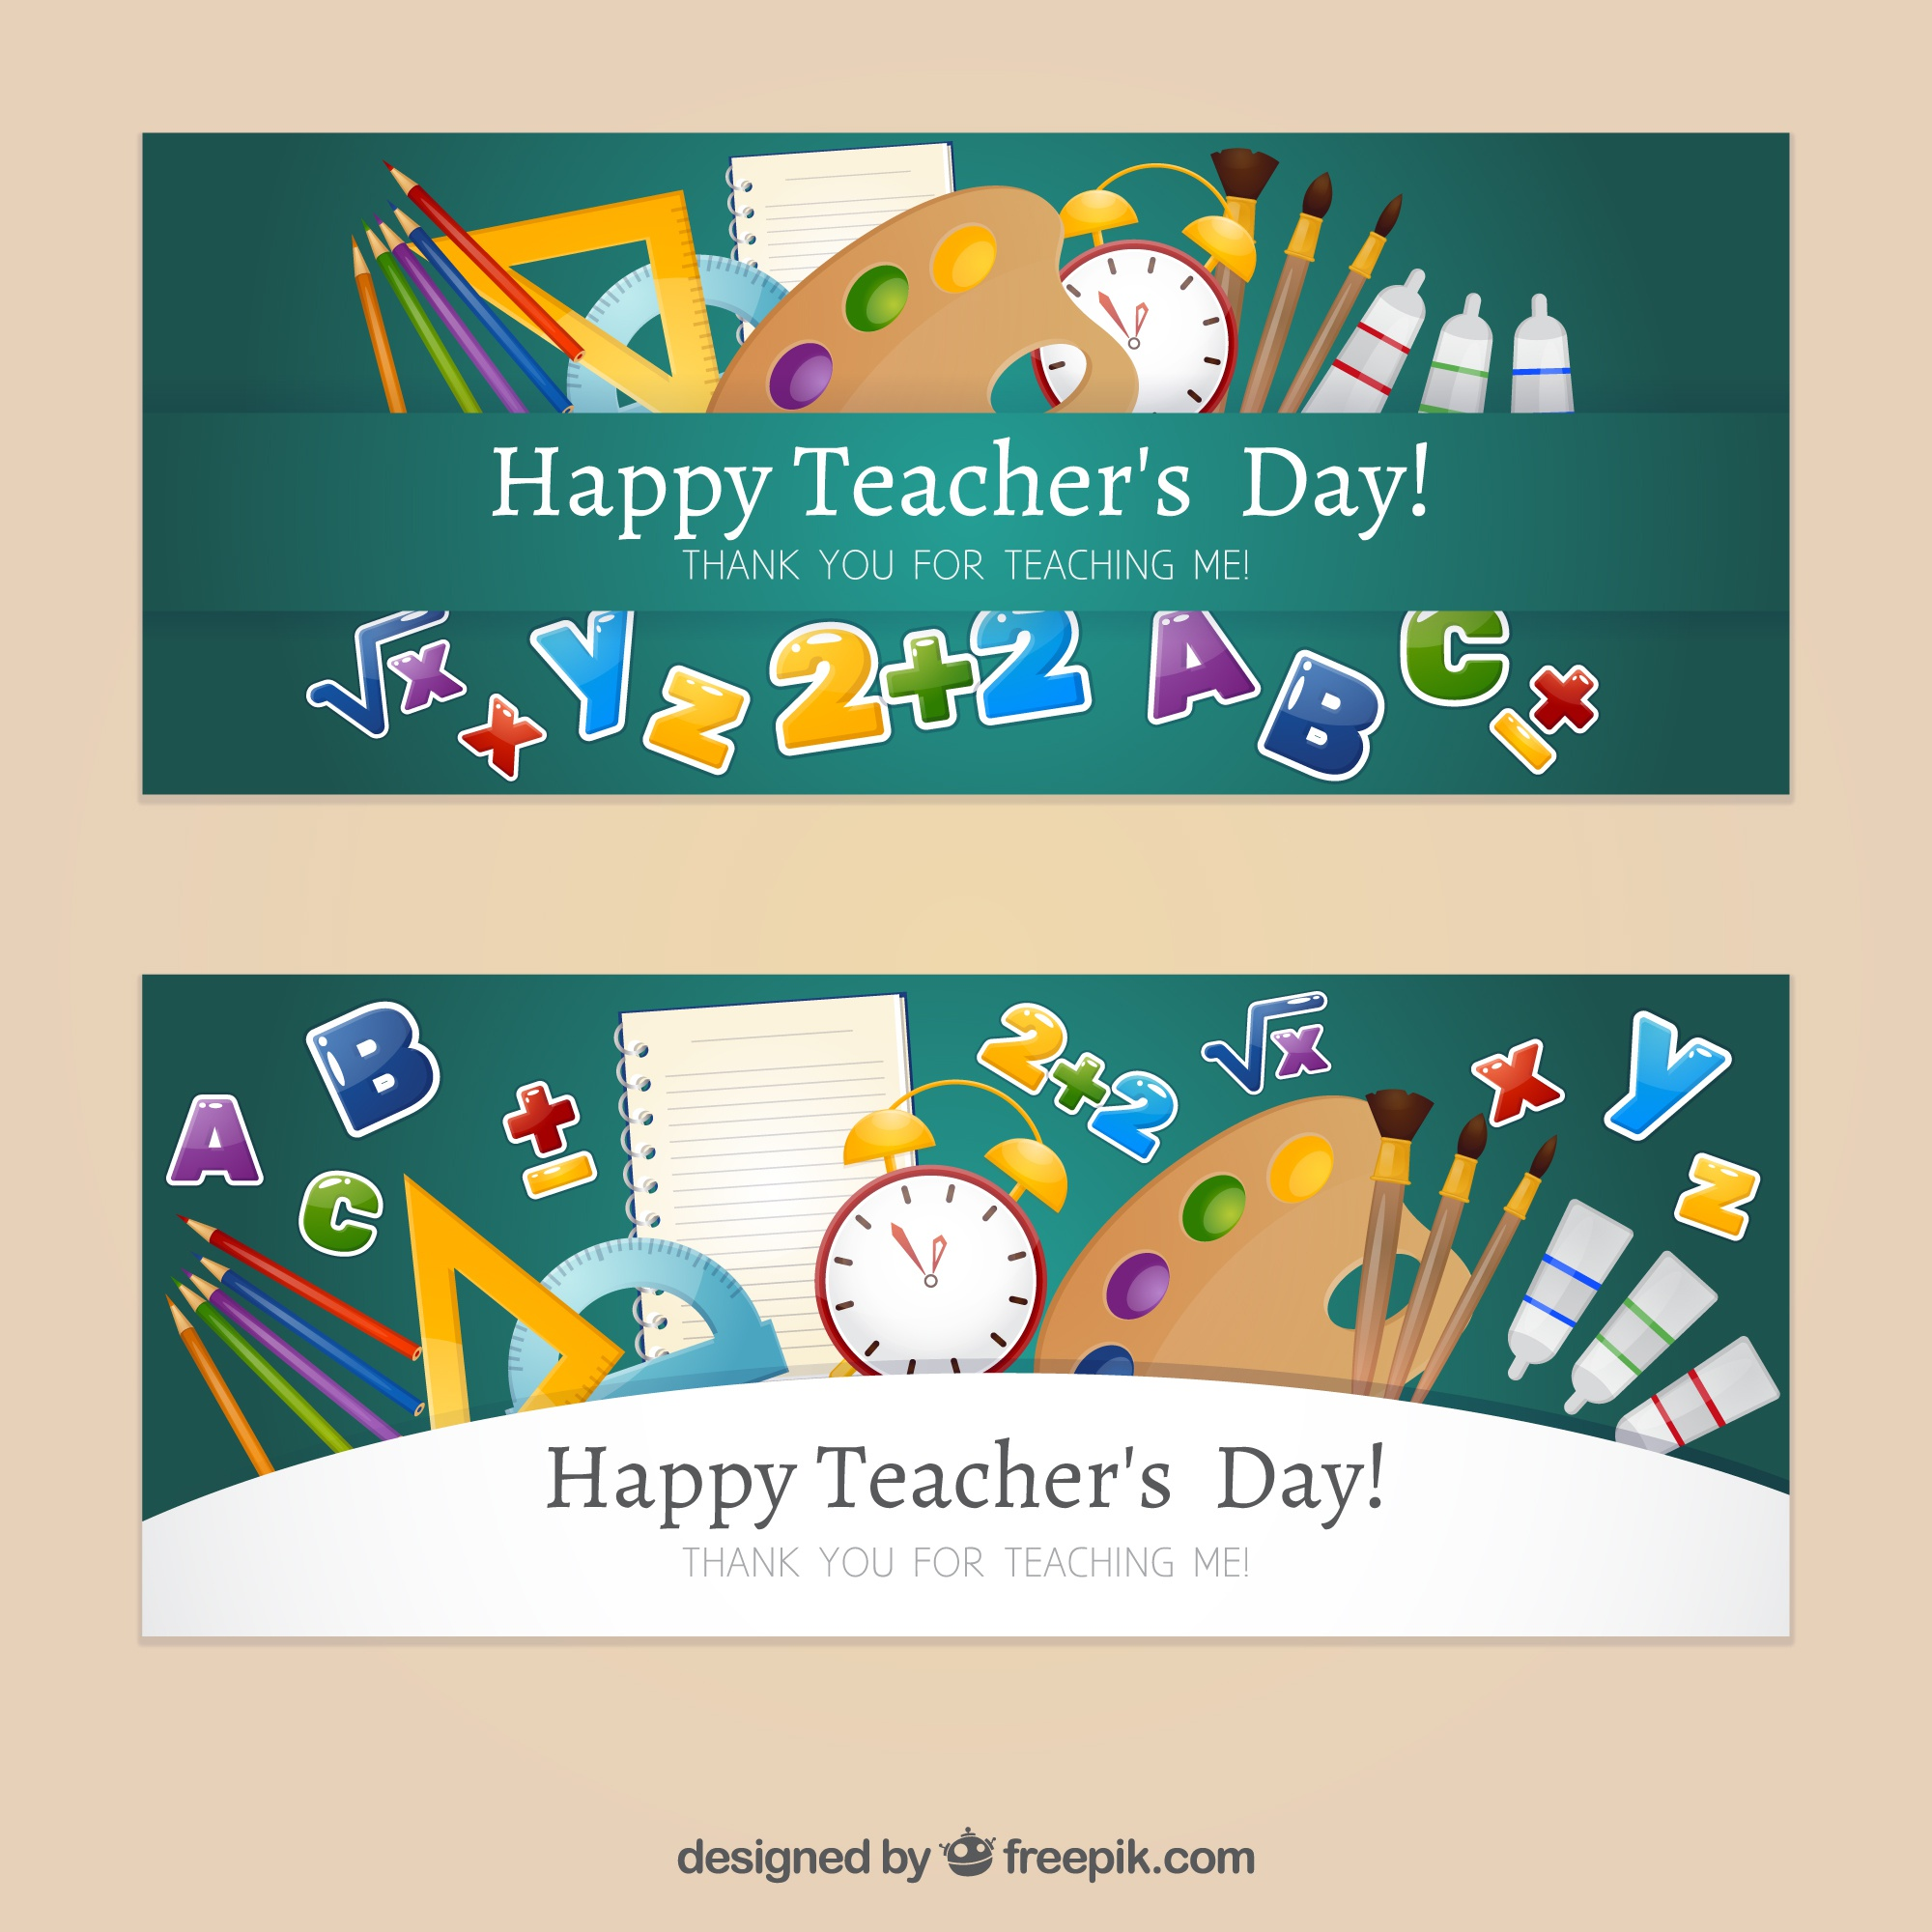 Happy teacher's day with hand-drawn banners